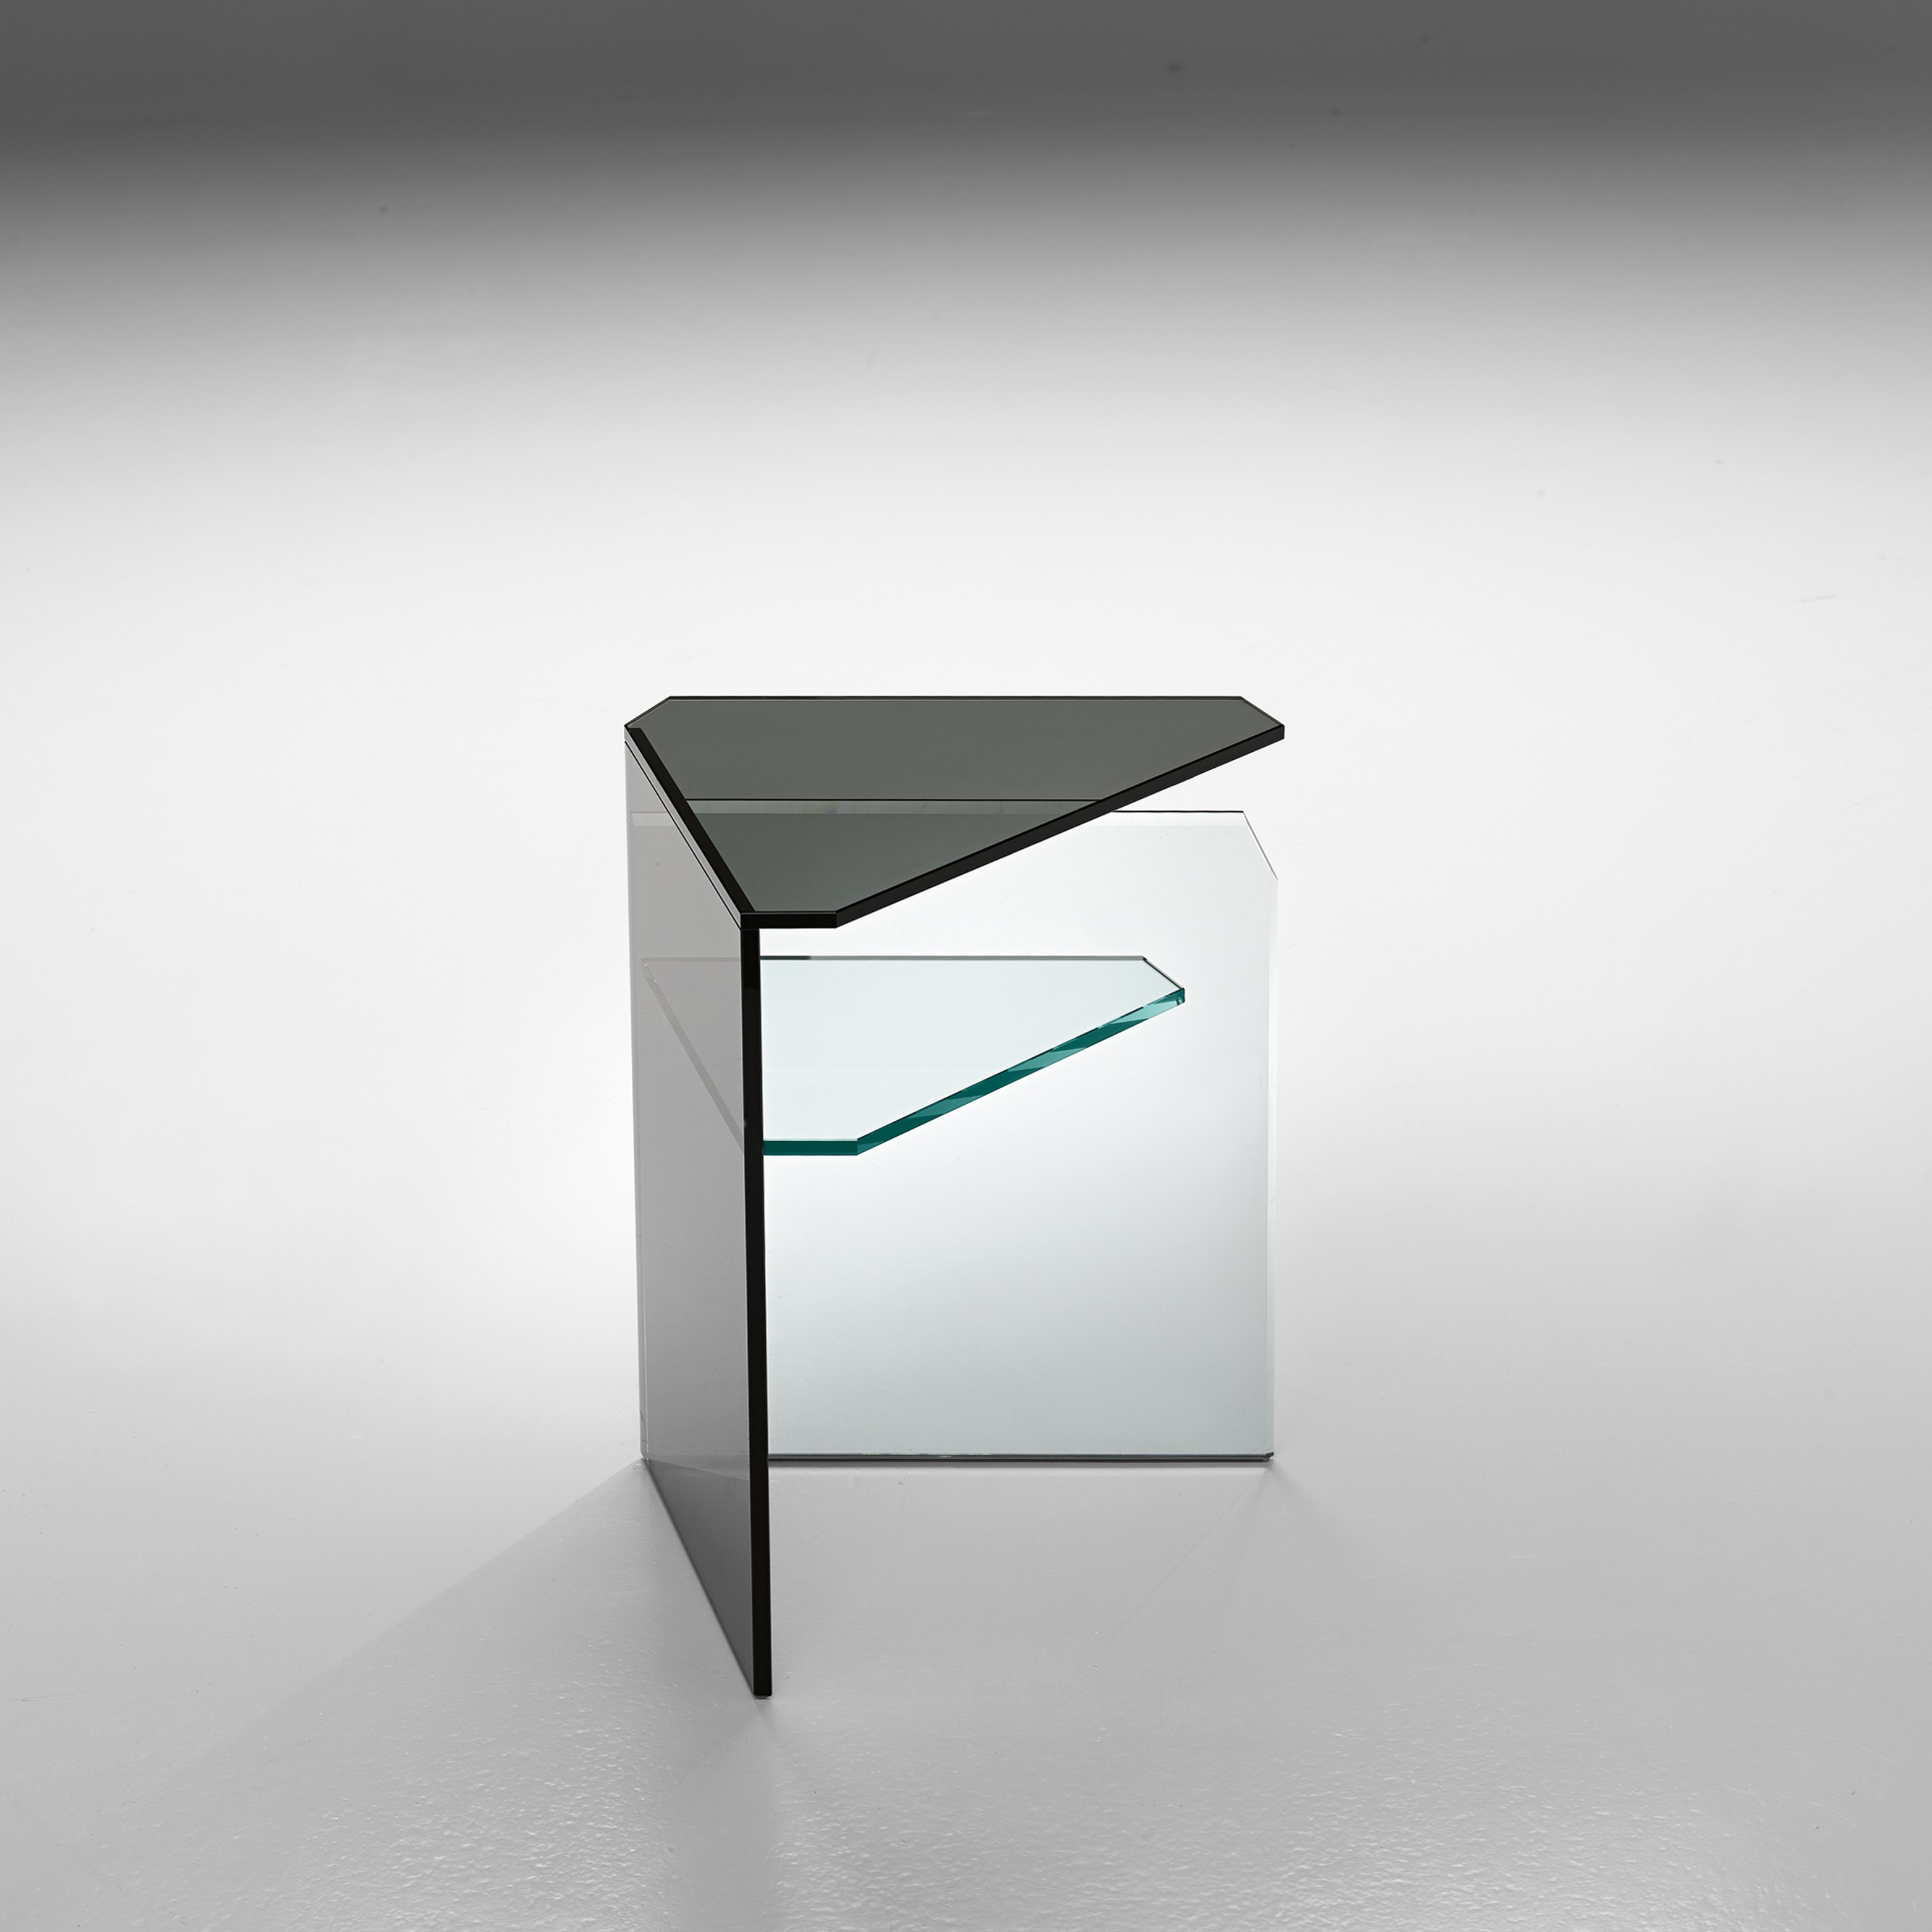 triangle glass corner accent table with shelf unique mirrored built closet organizer bathroom shower rack low long white acrylic plastic sheets wrought iron plant stand desk shape